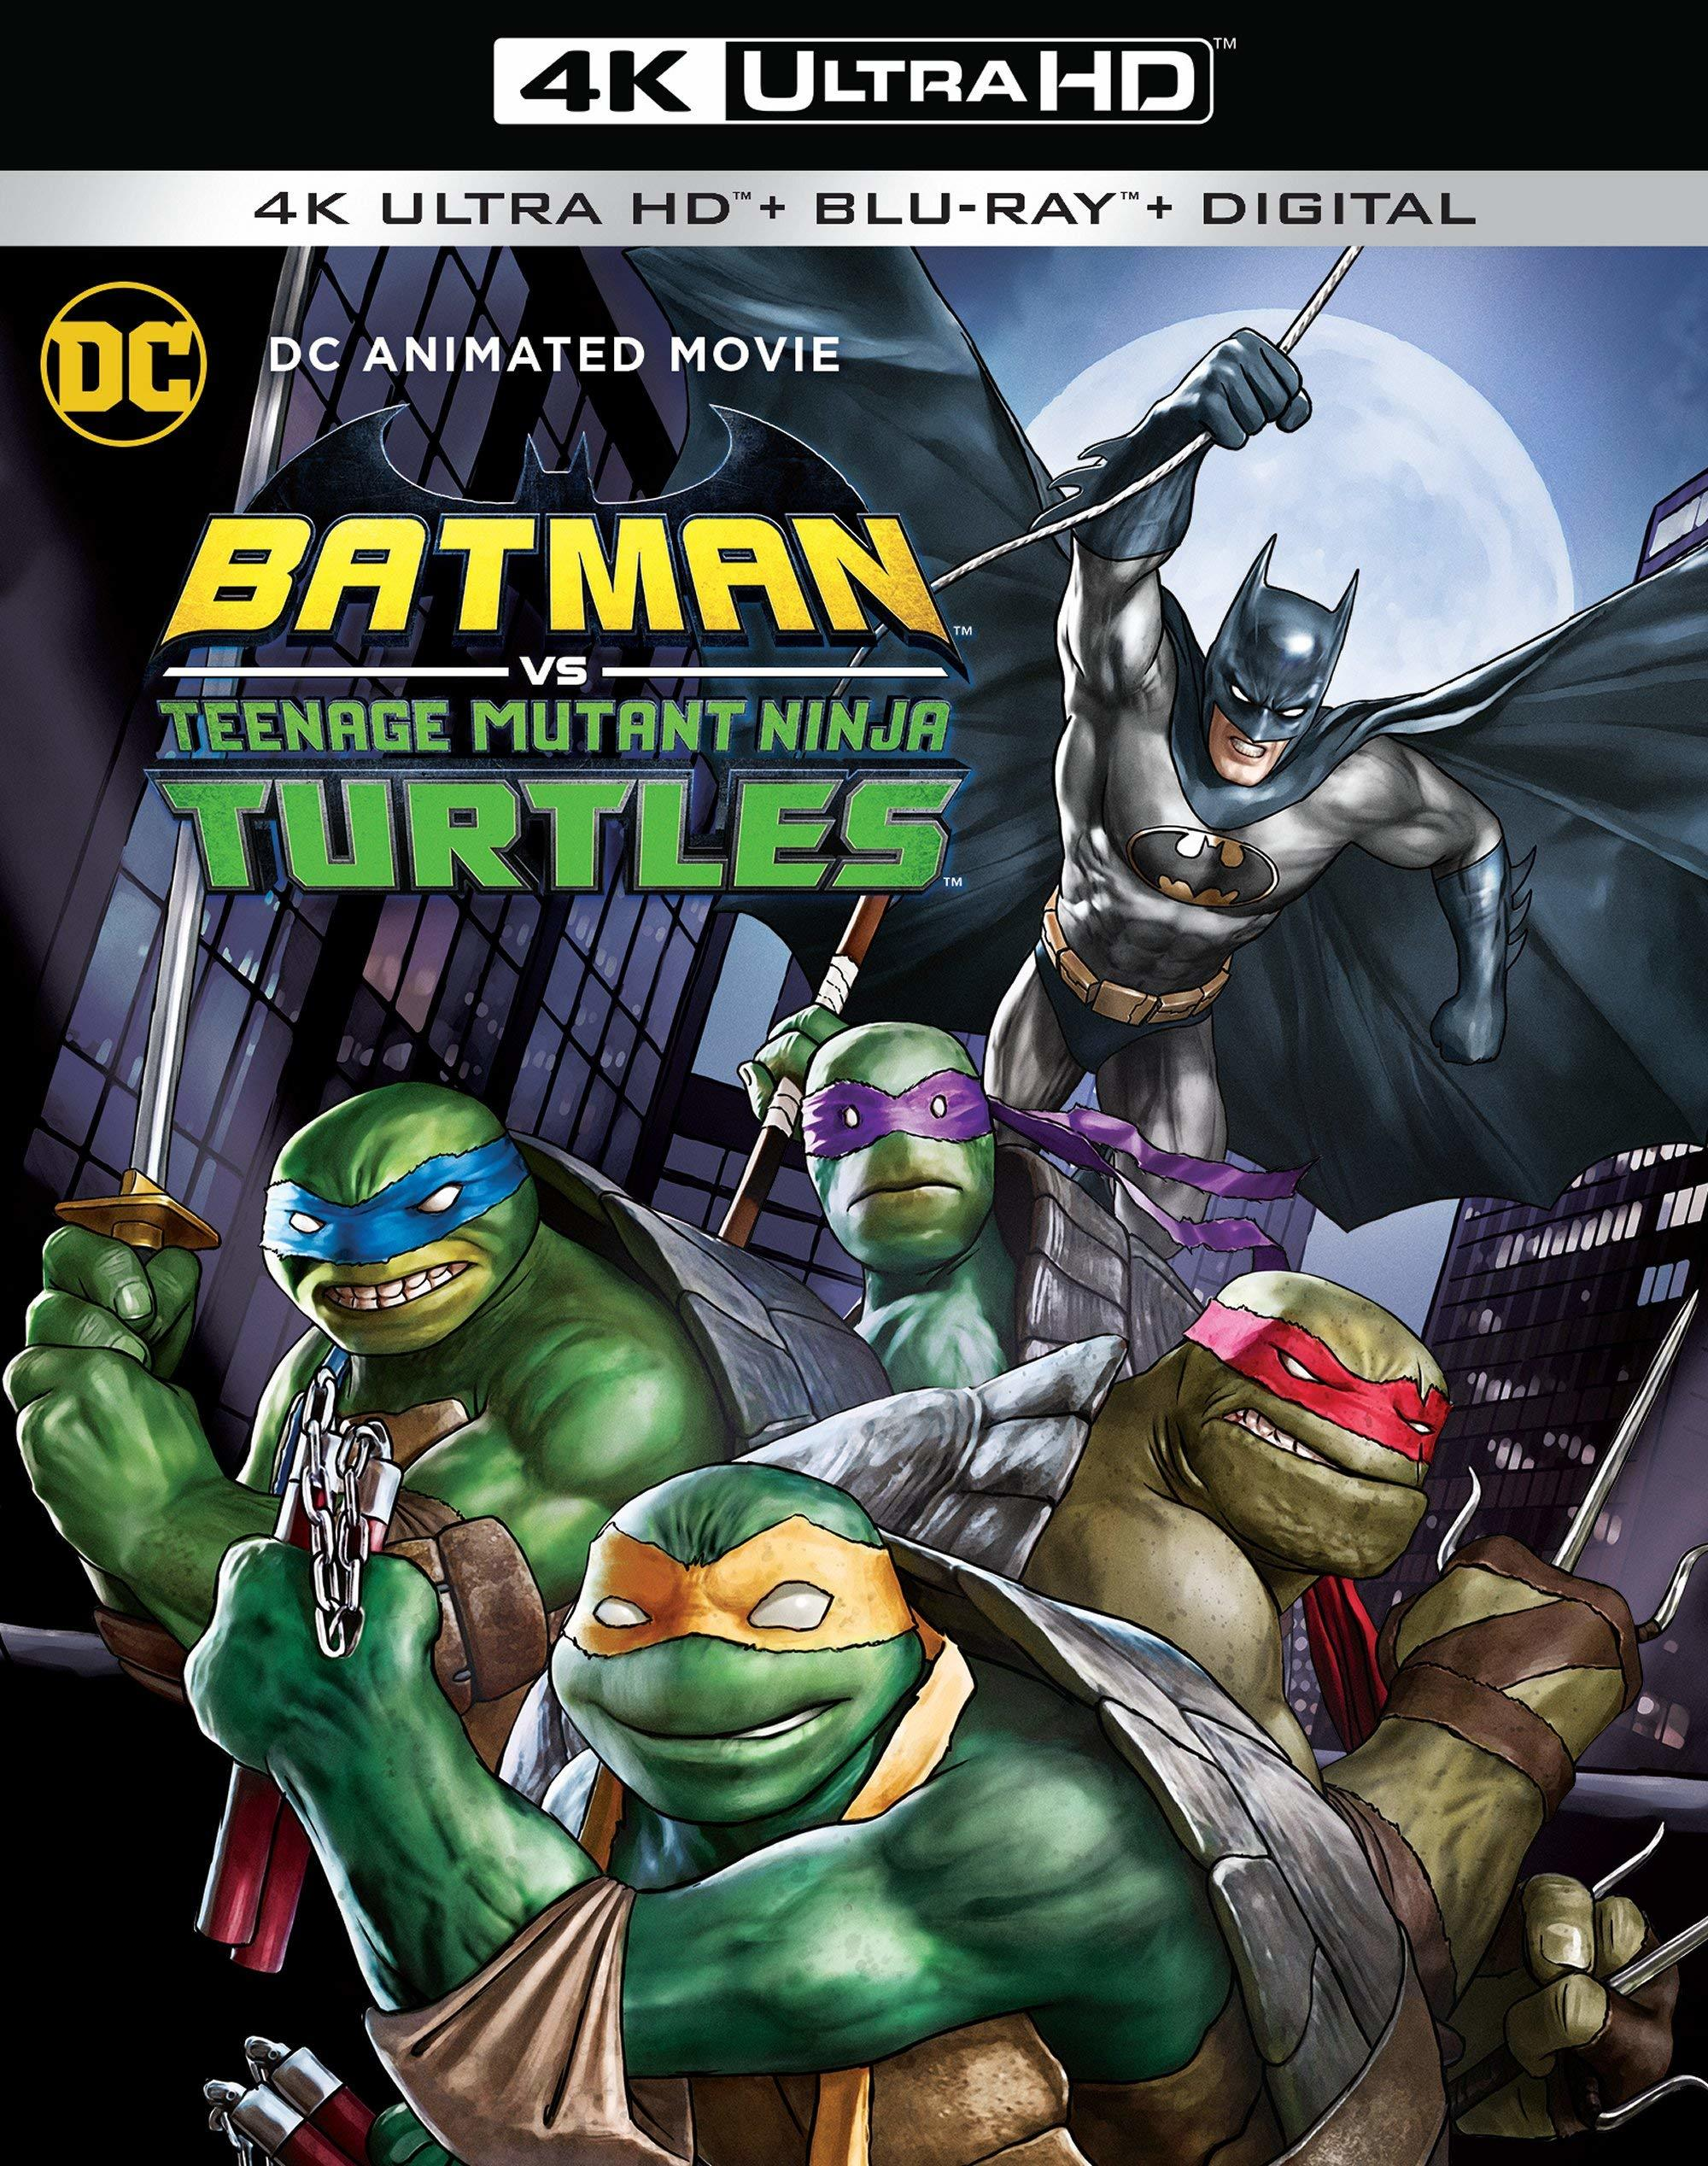 Batman Vs. Teenage Mutant Ninja Turtles (4K Ultra HD Blu-ray)(Pre-order / Jun 4)